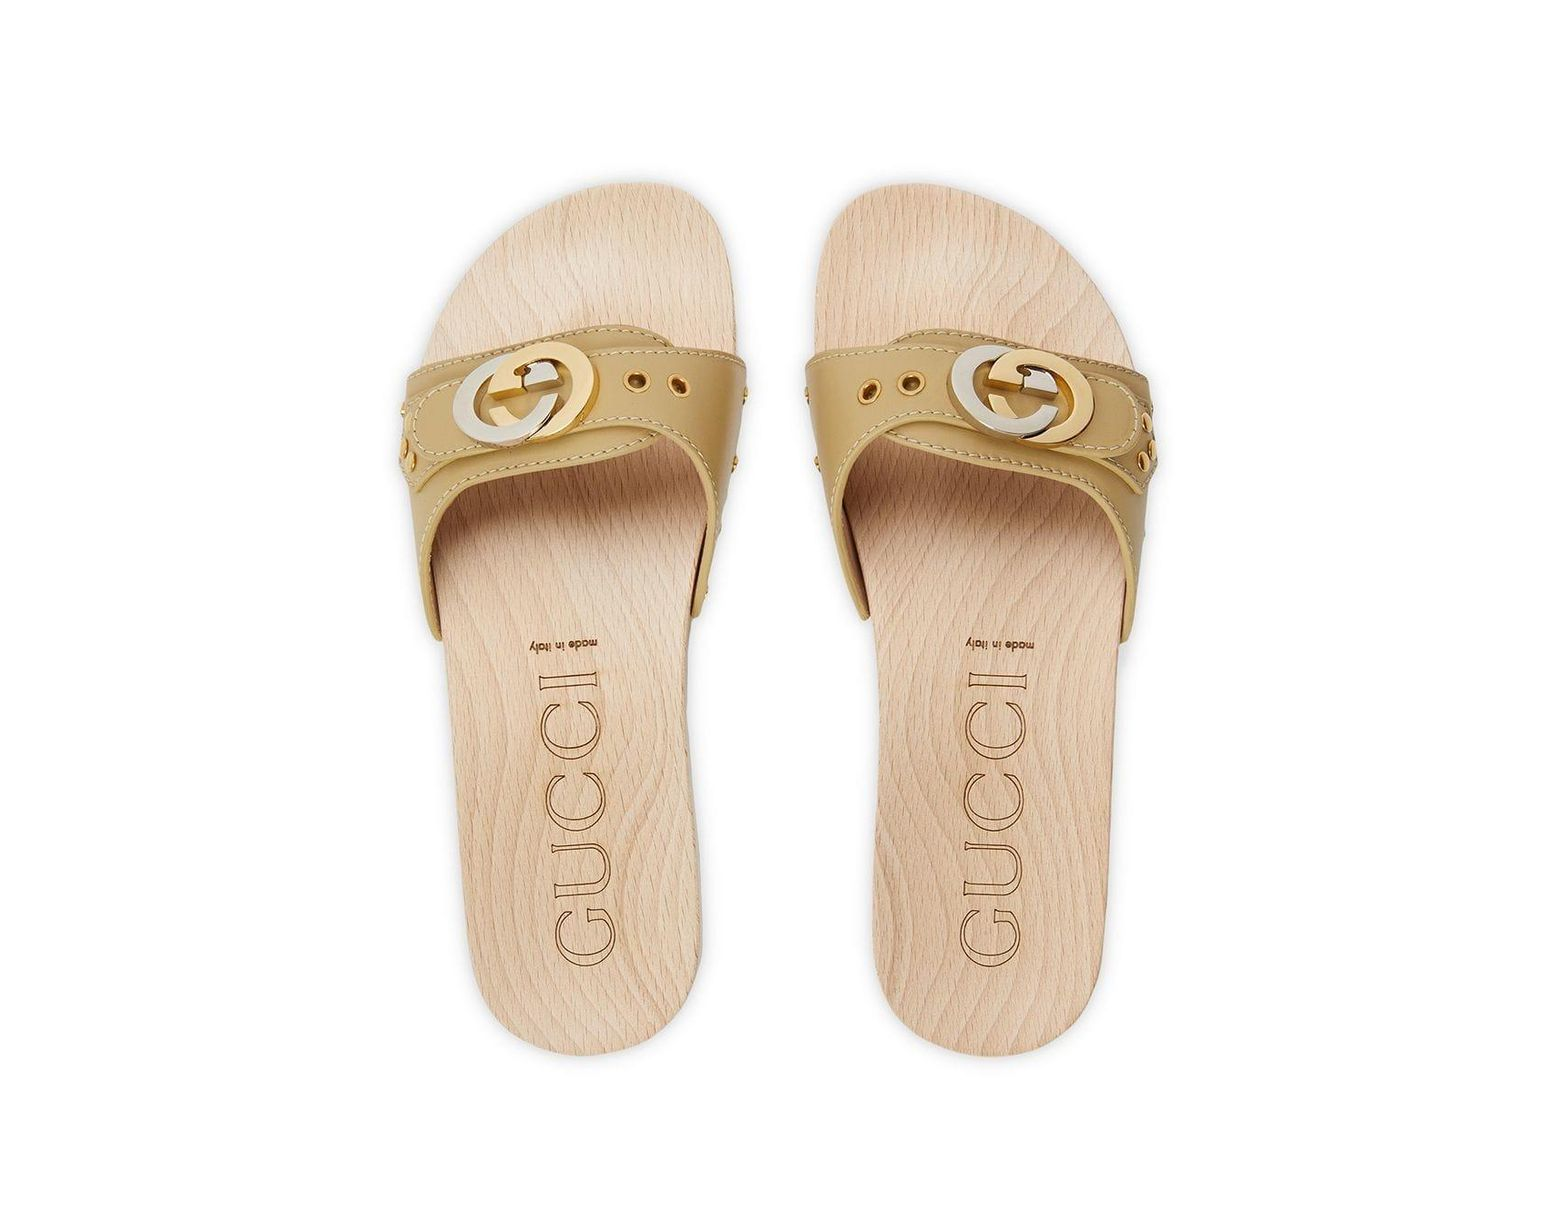 413160c7a Gucci Leather Slide Sandal With Interlocking G in Natural - Lyst